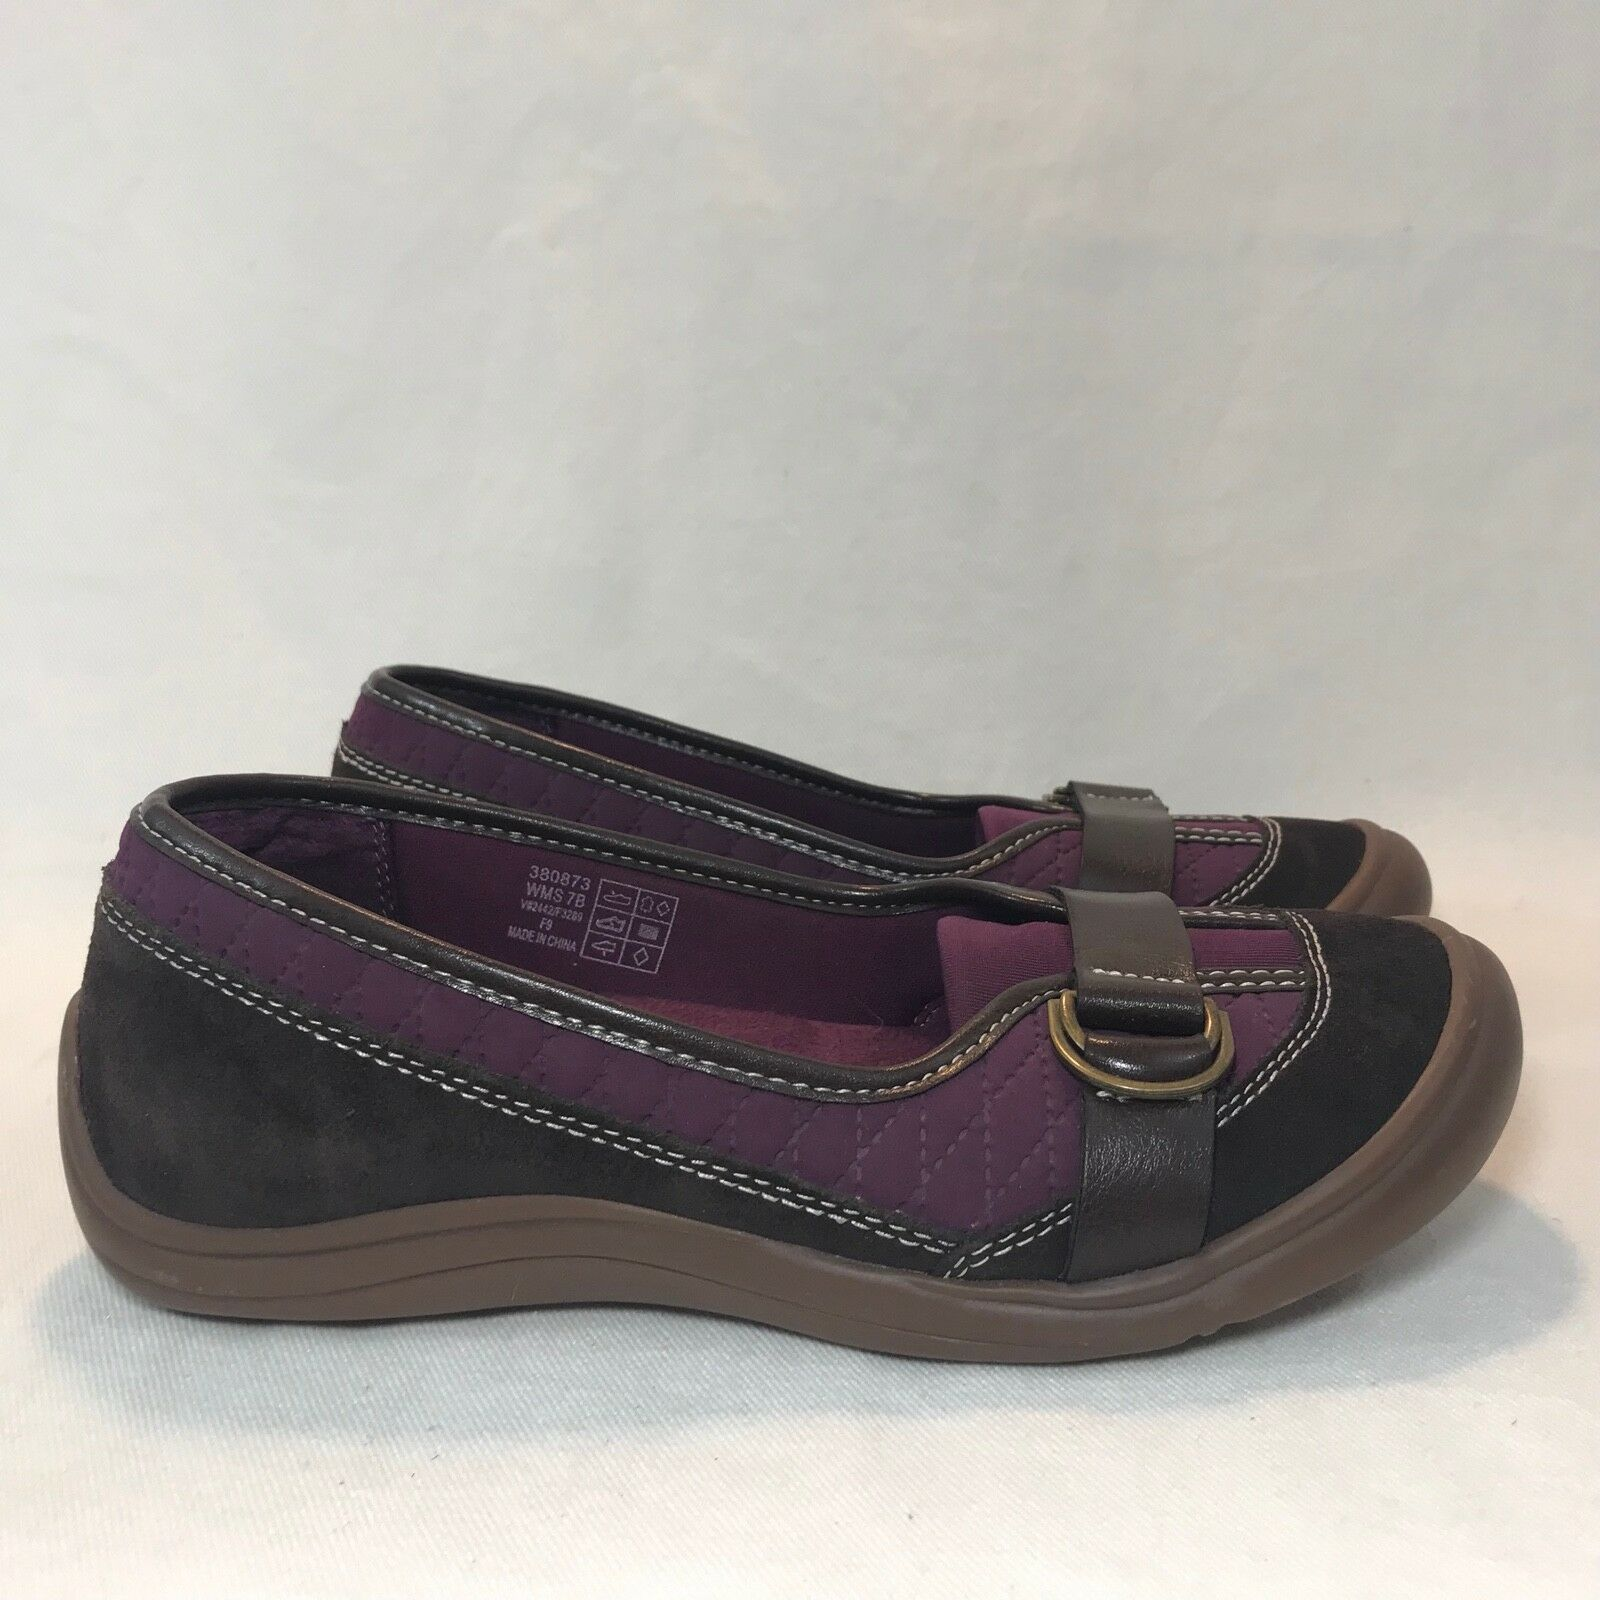 Land's End Sz 7 Brown & Purple Suede Leather Slip On Loafer Flats Driving shoes